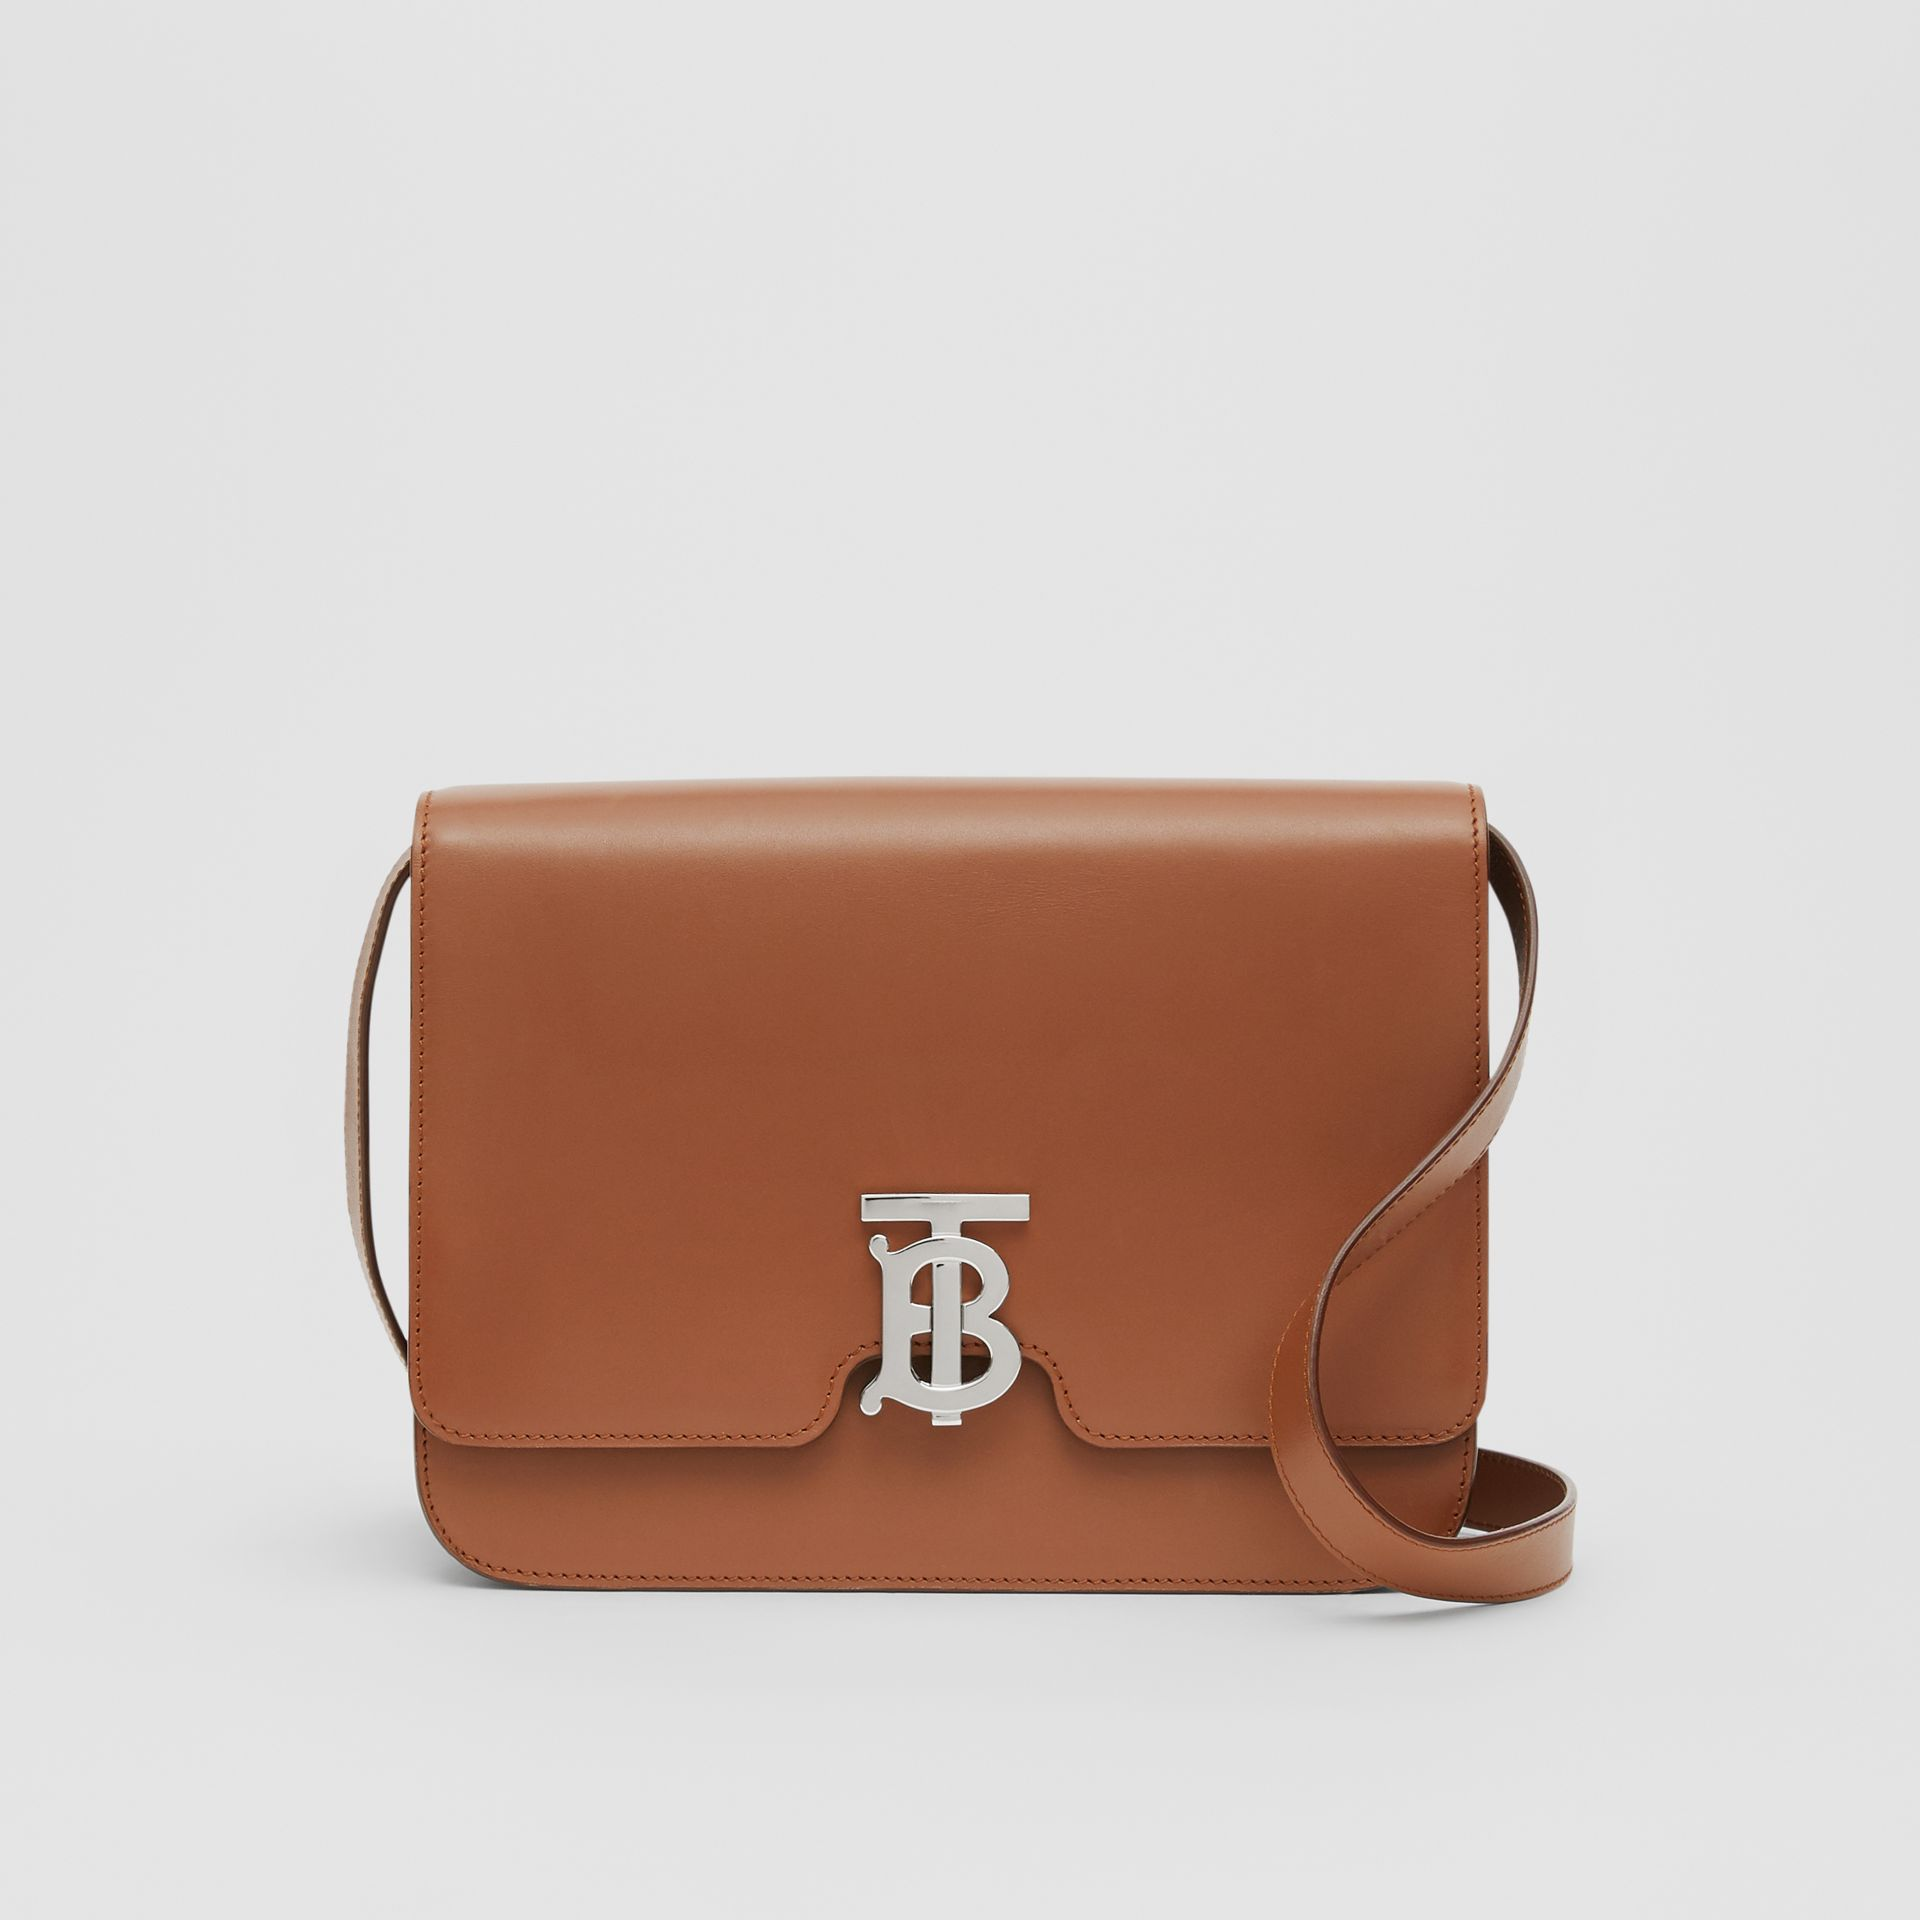 Medium Leather TB Bag in Malt Brown - Women | Burberry Australia - gallery image 0